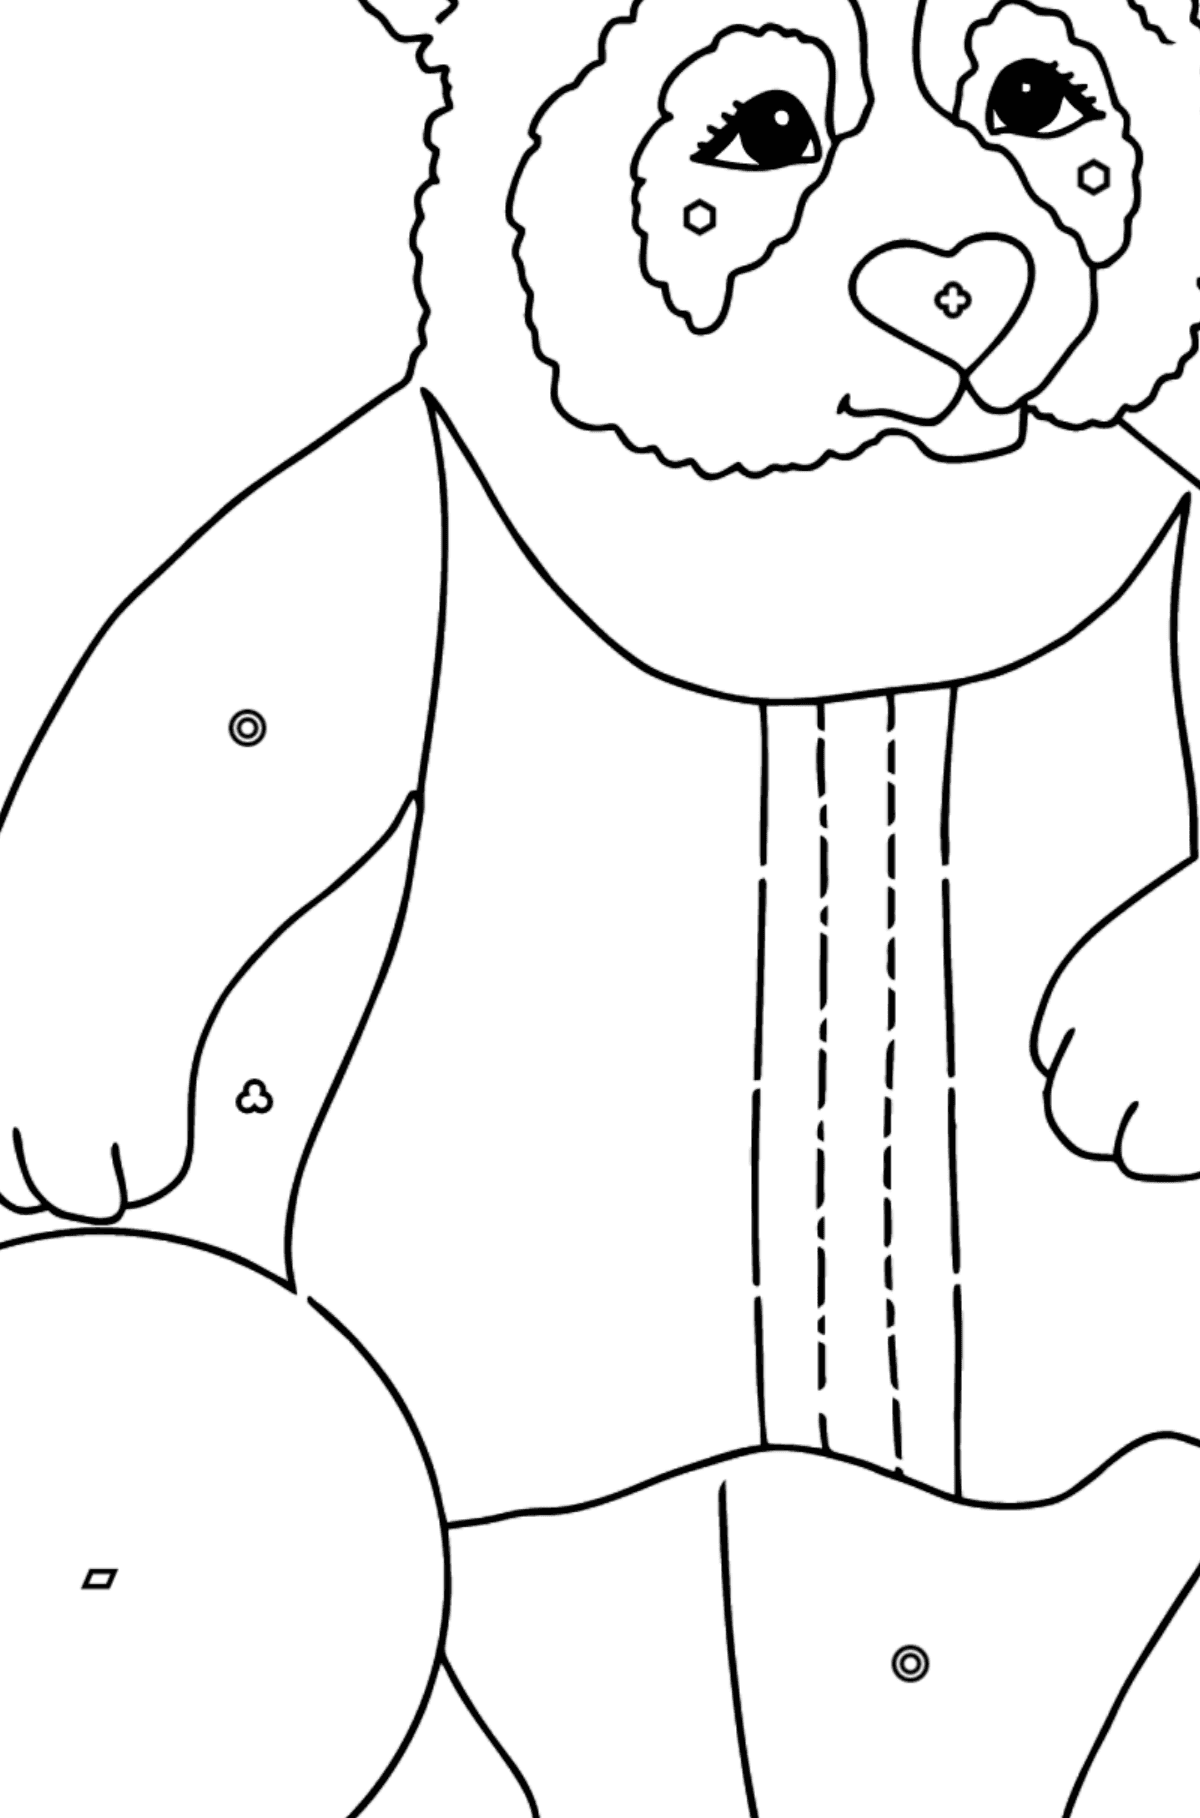 Coloring Picture - A Panda is Playing Ball - Coloring by Geometric Shapes for Kids